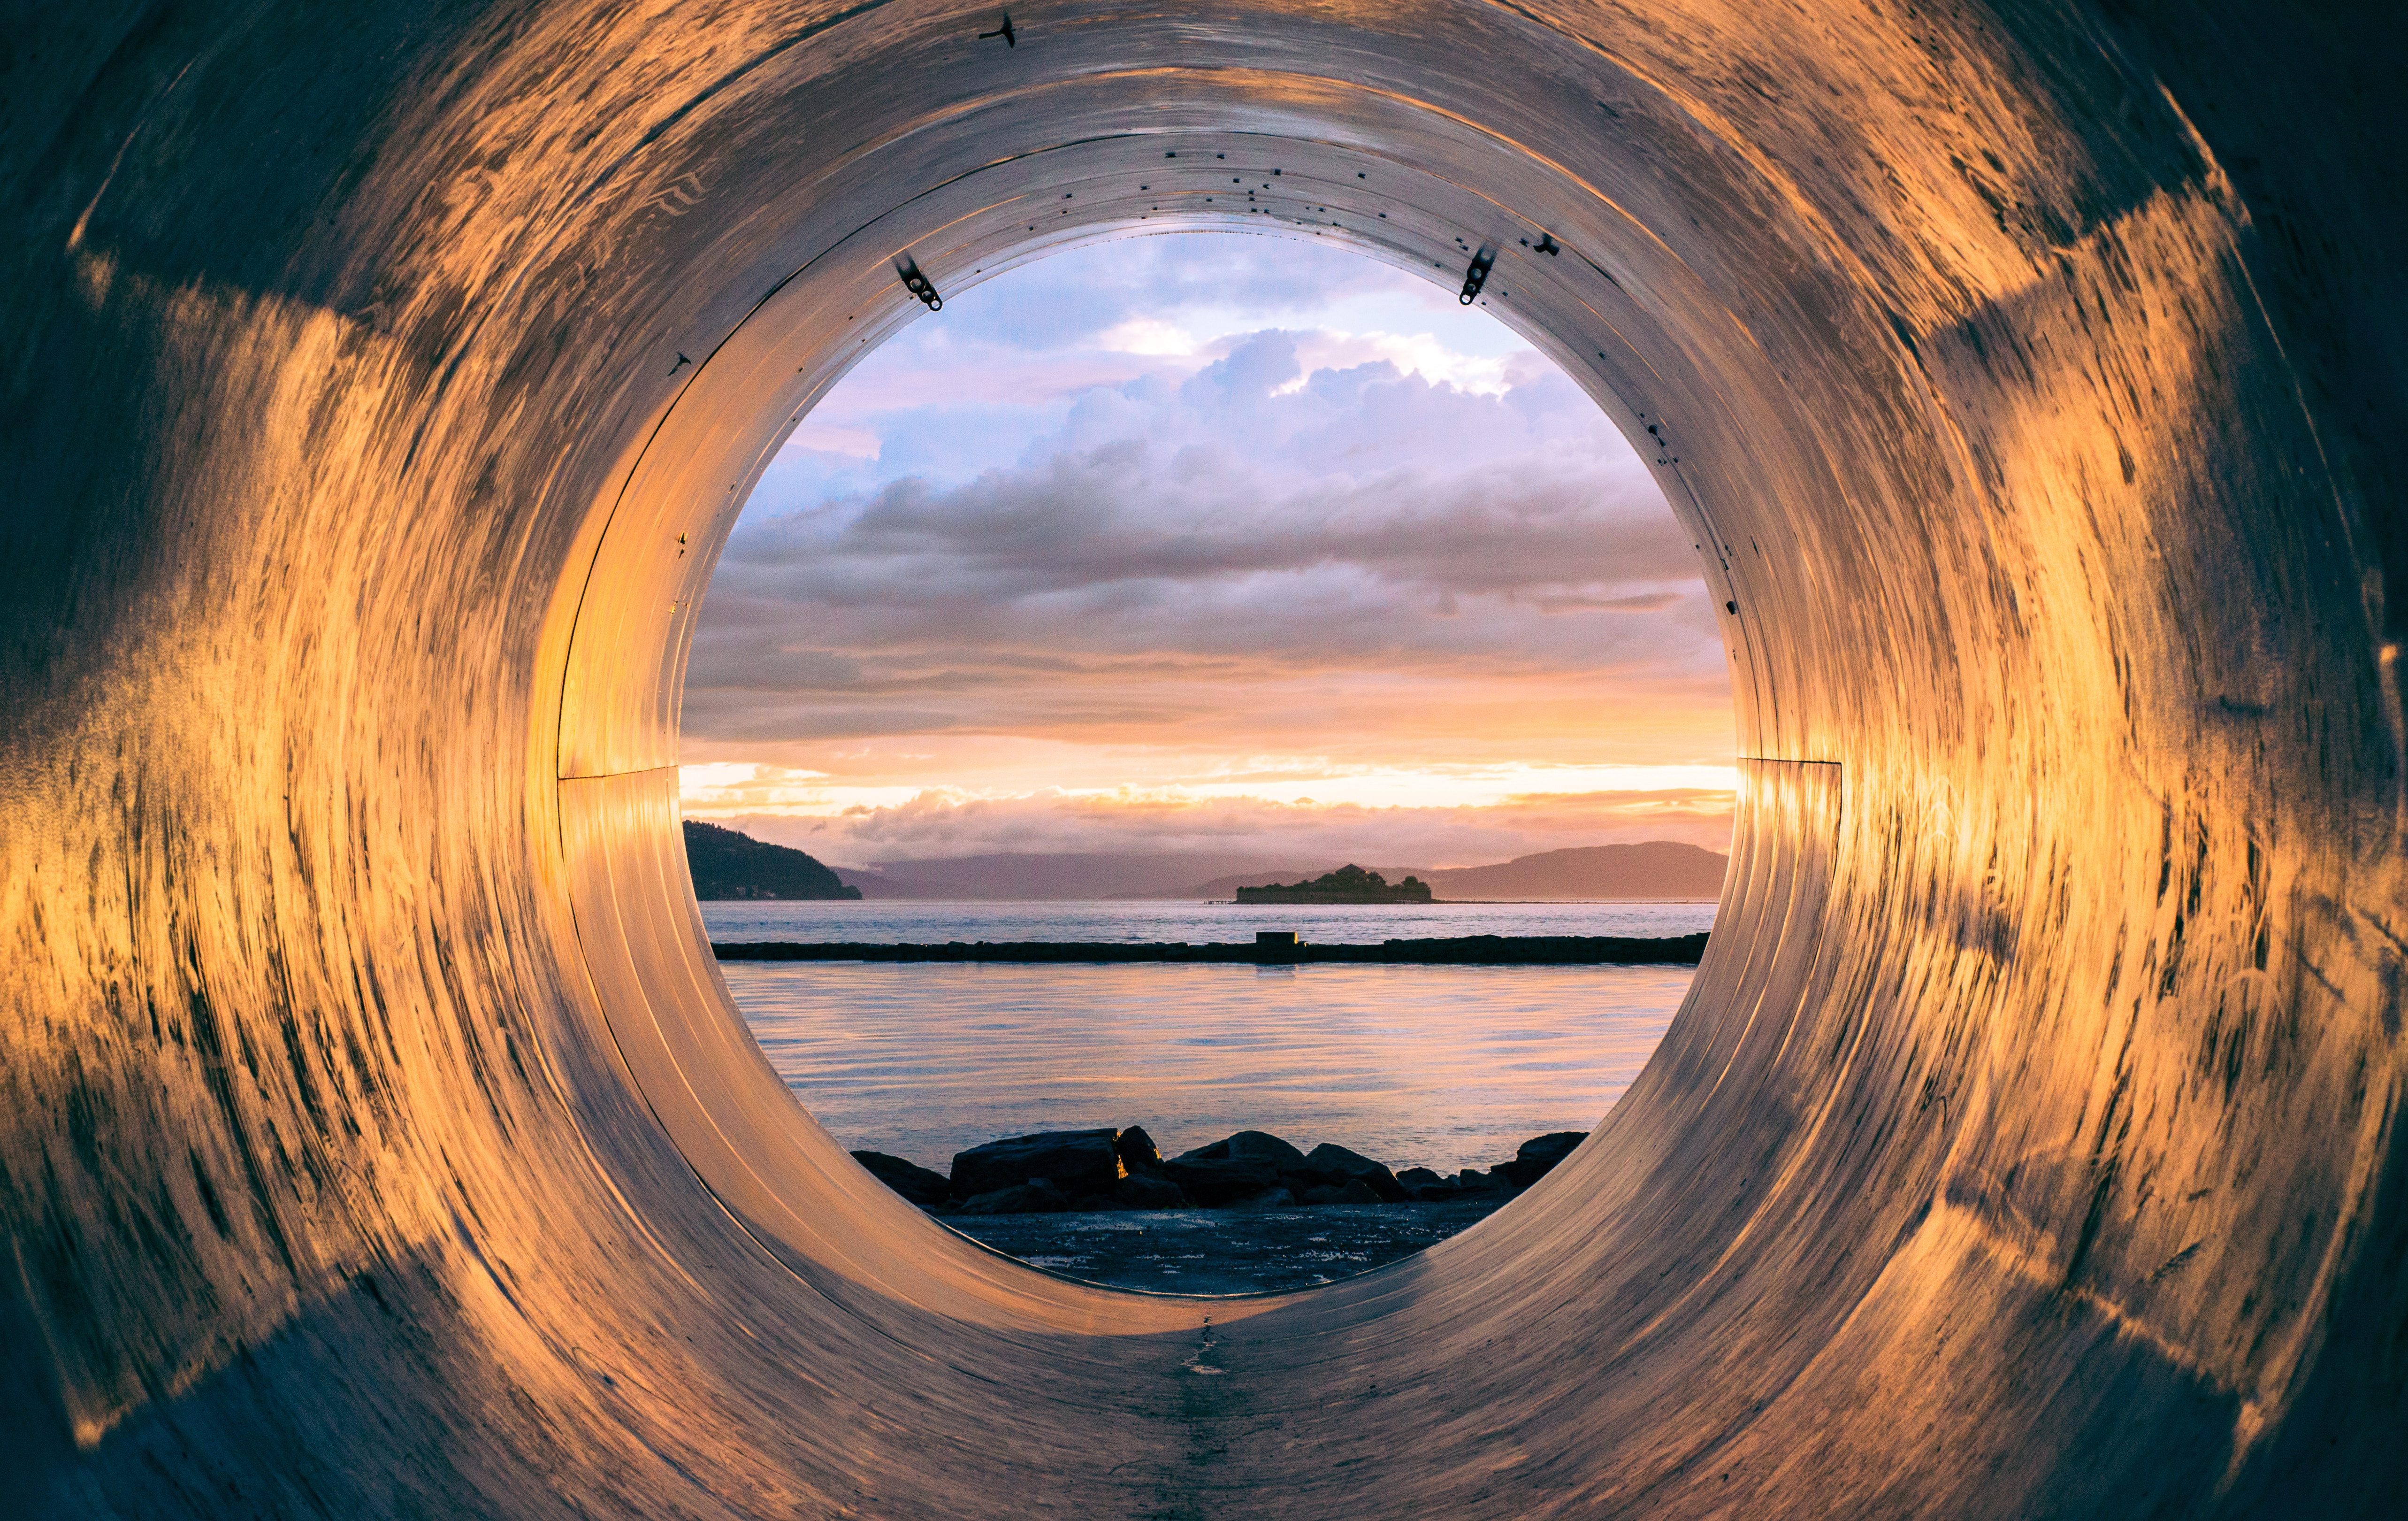 erlend ekseth 33567 unsplash - New York Rejects Pipeline Citing Environmental and Climate Change Concerns